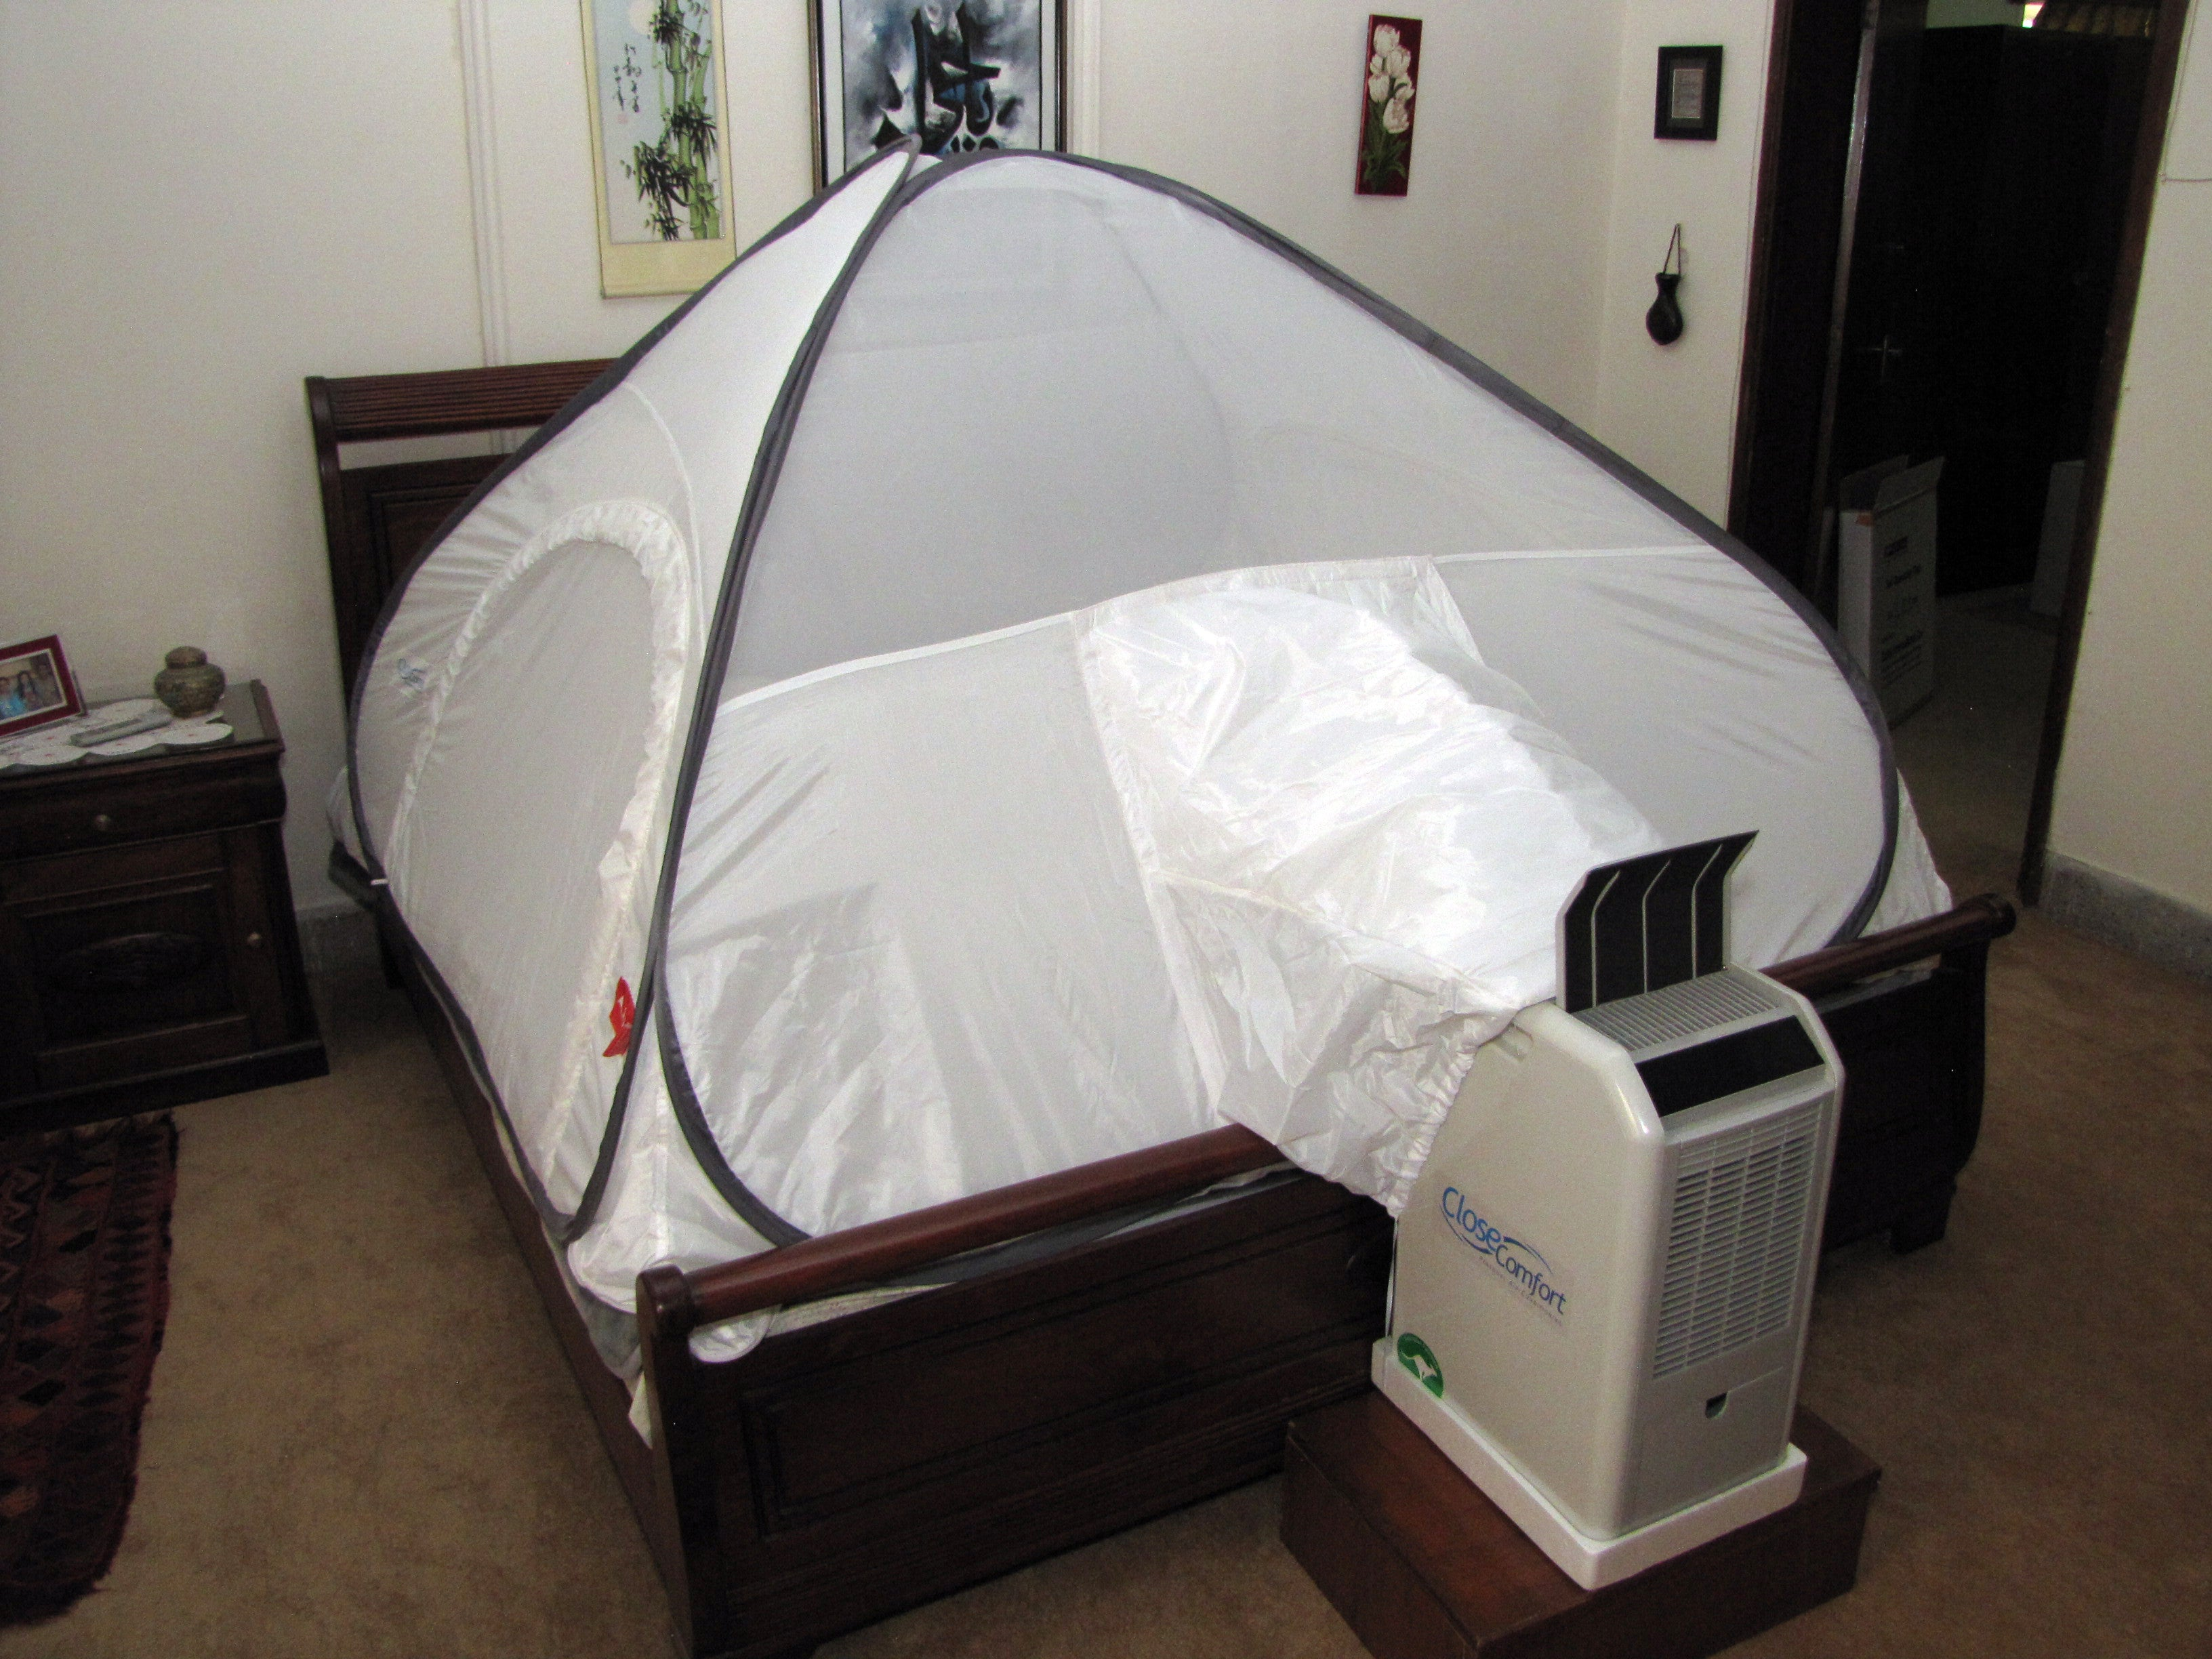 Energy Saver Pc8 Air Conditioner With Free Pyramid Tent